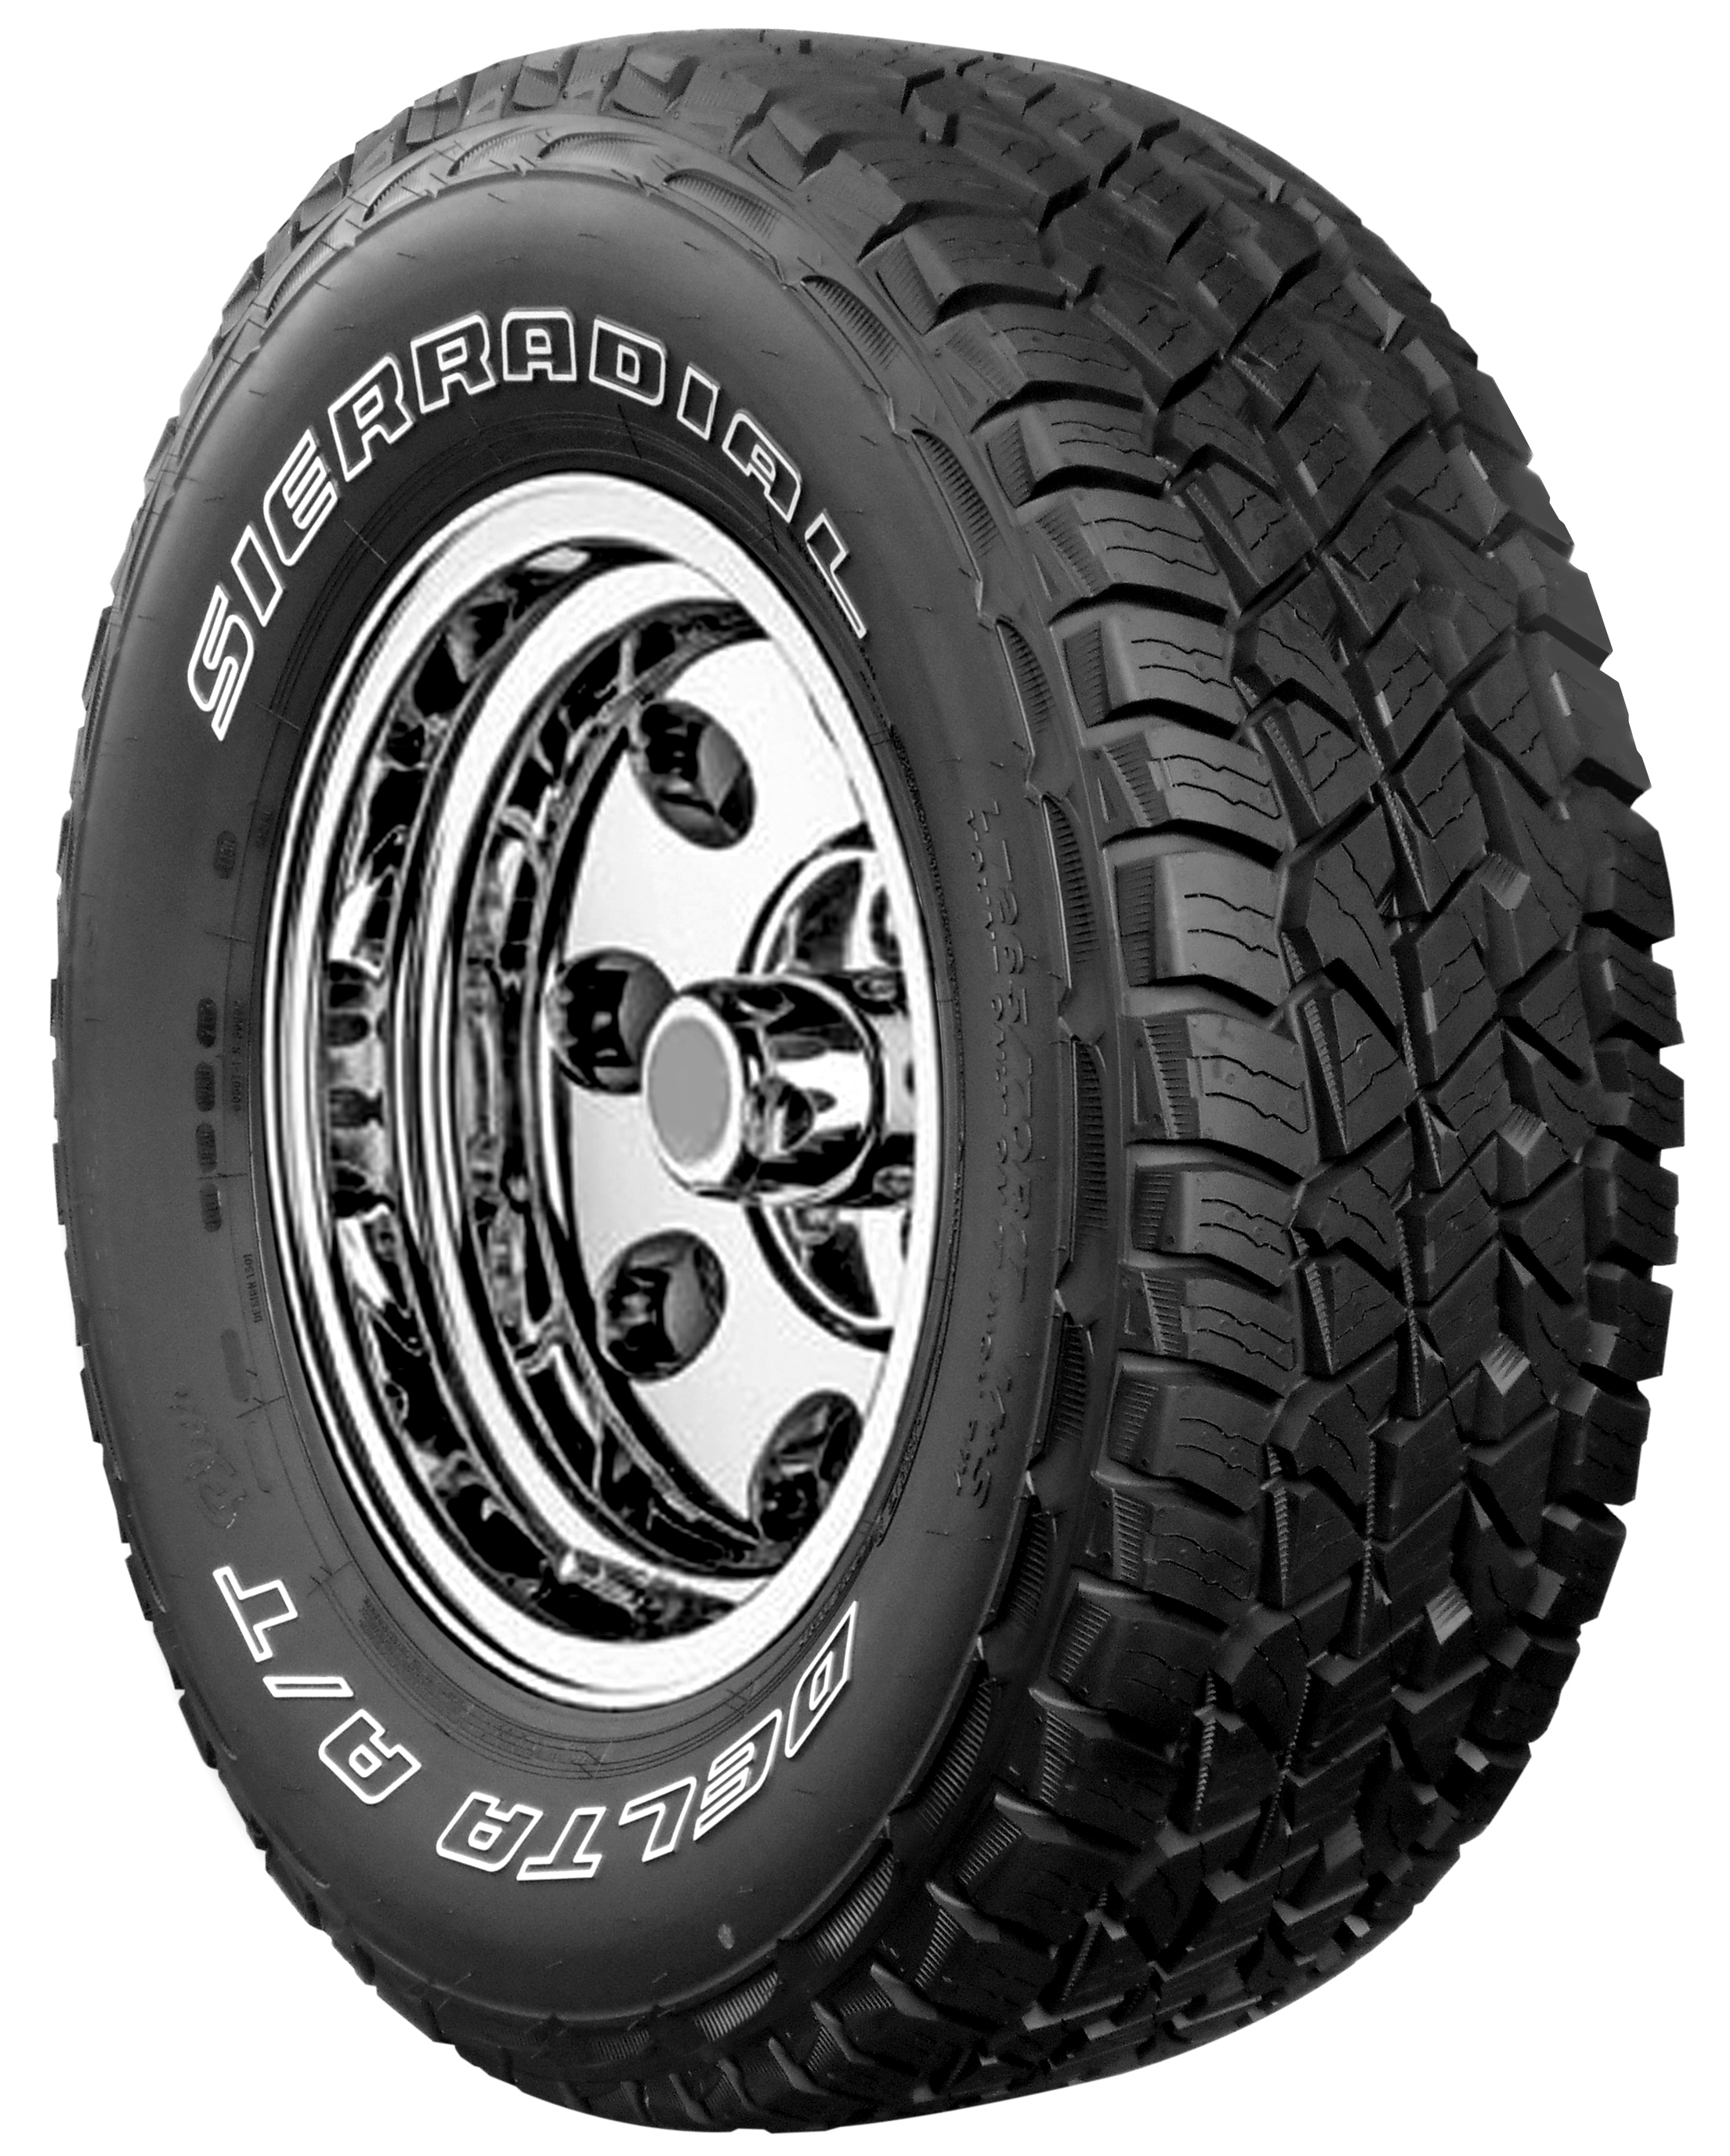 Del-Nat Tire Offers AT Plus SUV/LT Tire